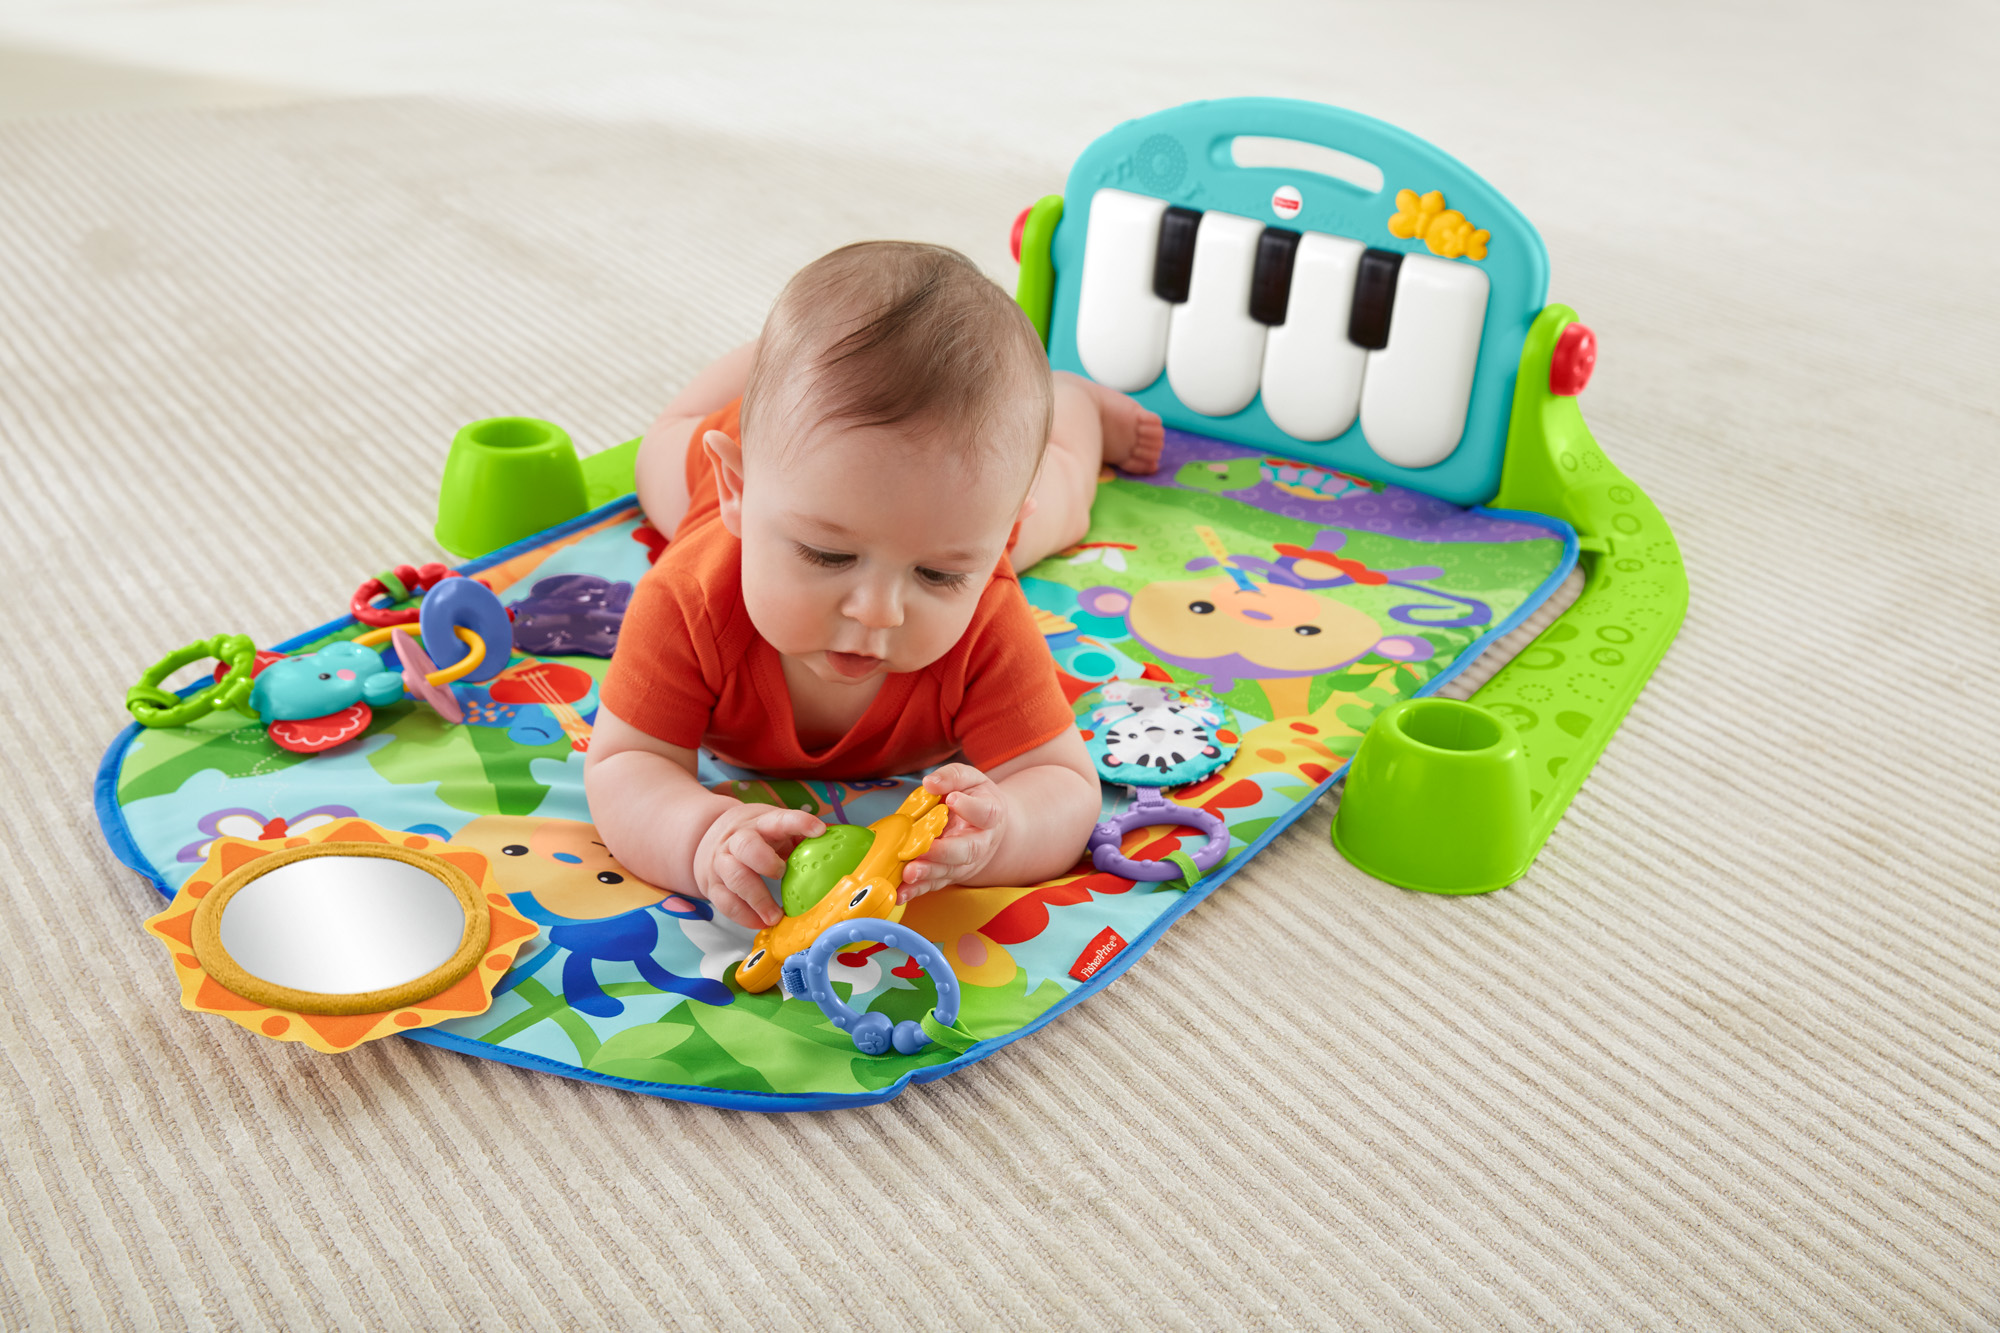 baby playing on a mat play com yourbabyblog kid floor foam floors care gym